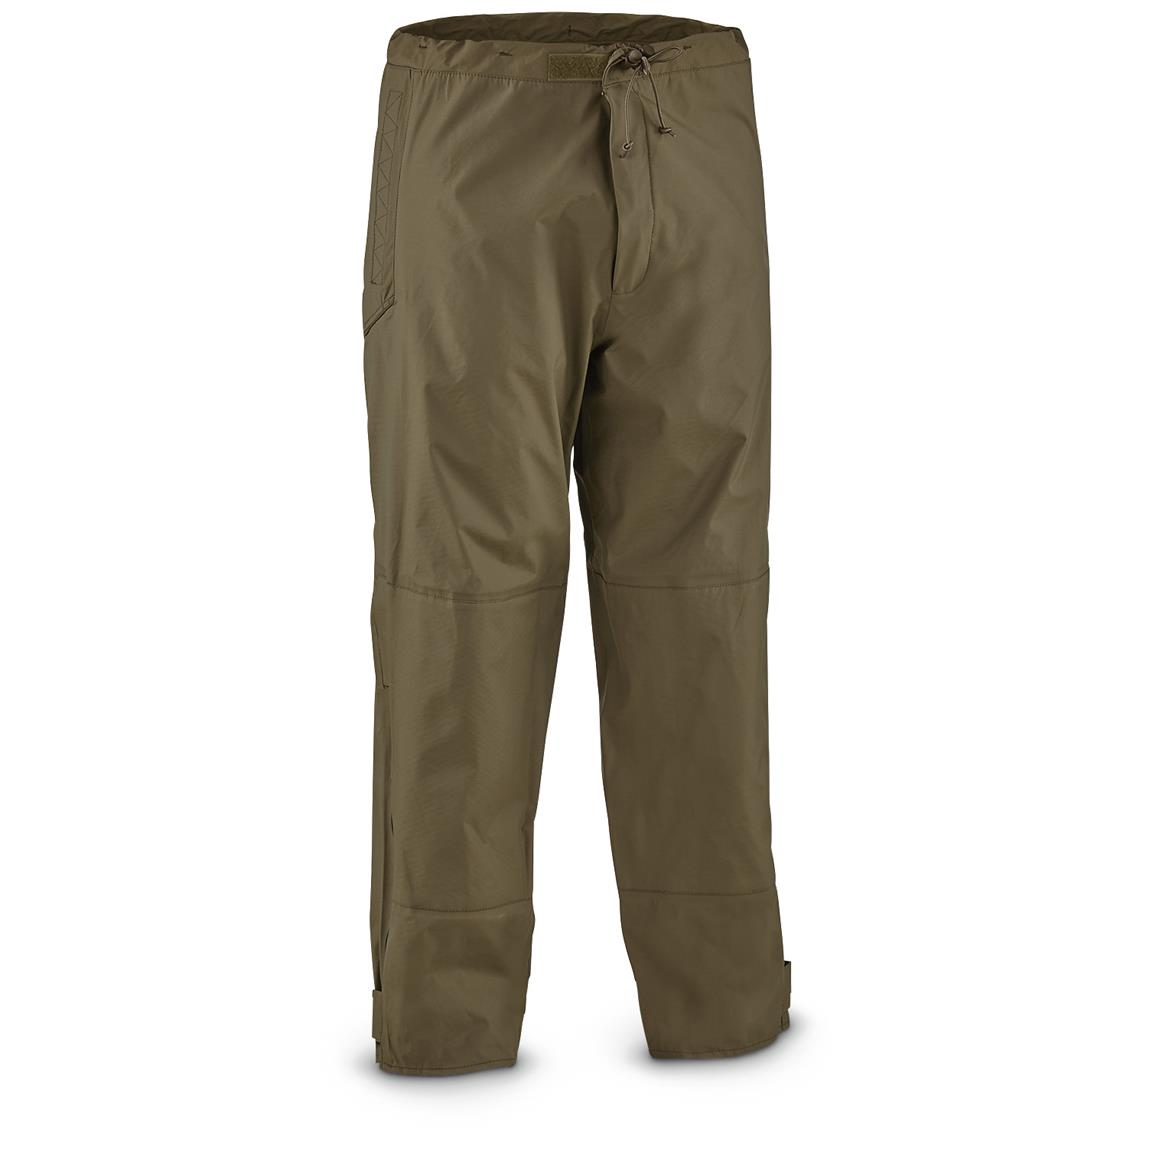 Voodoo Tactical ECW Waterproof Pants, Olive Drab